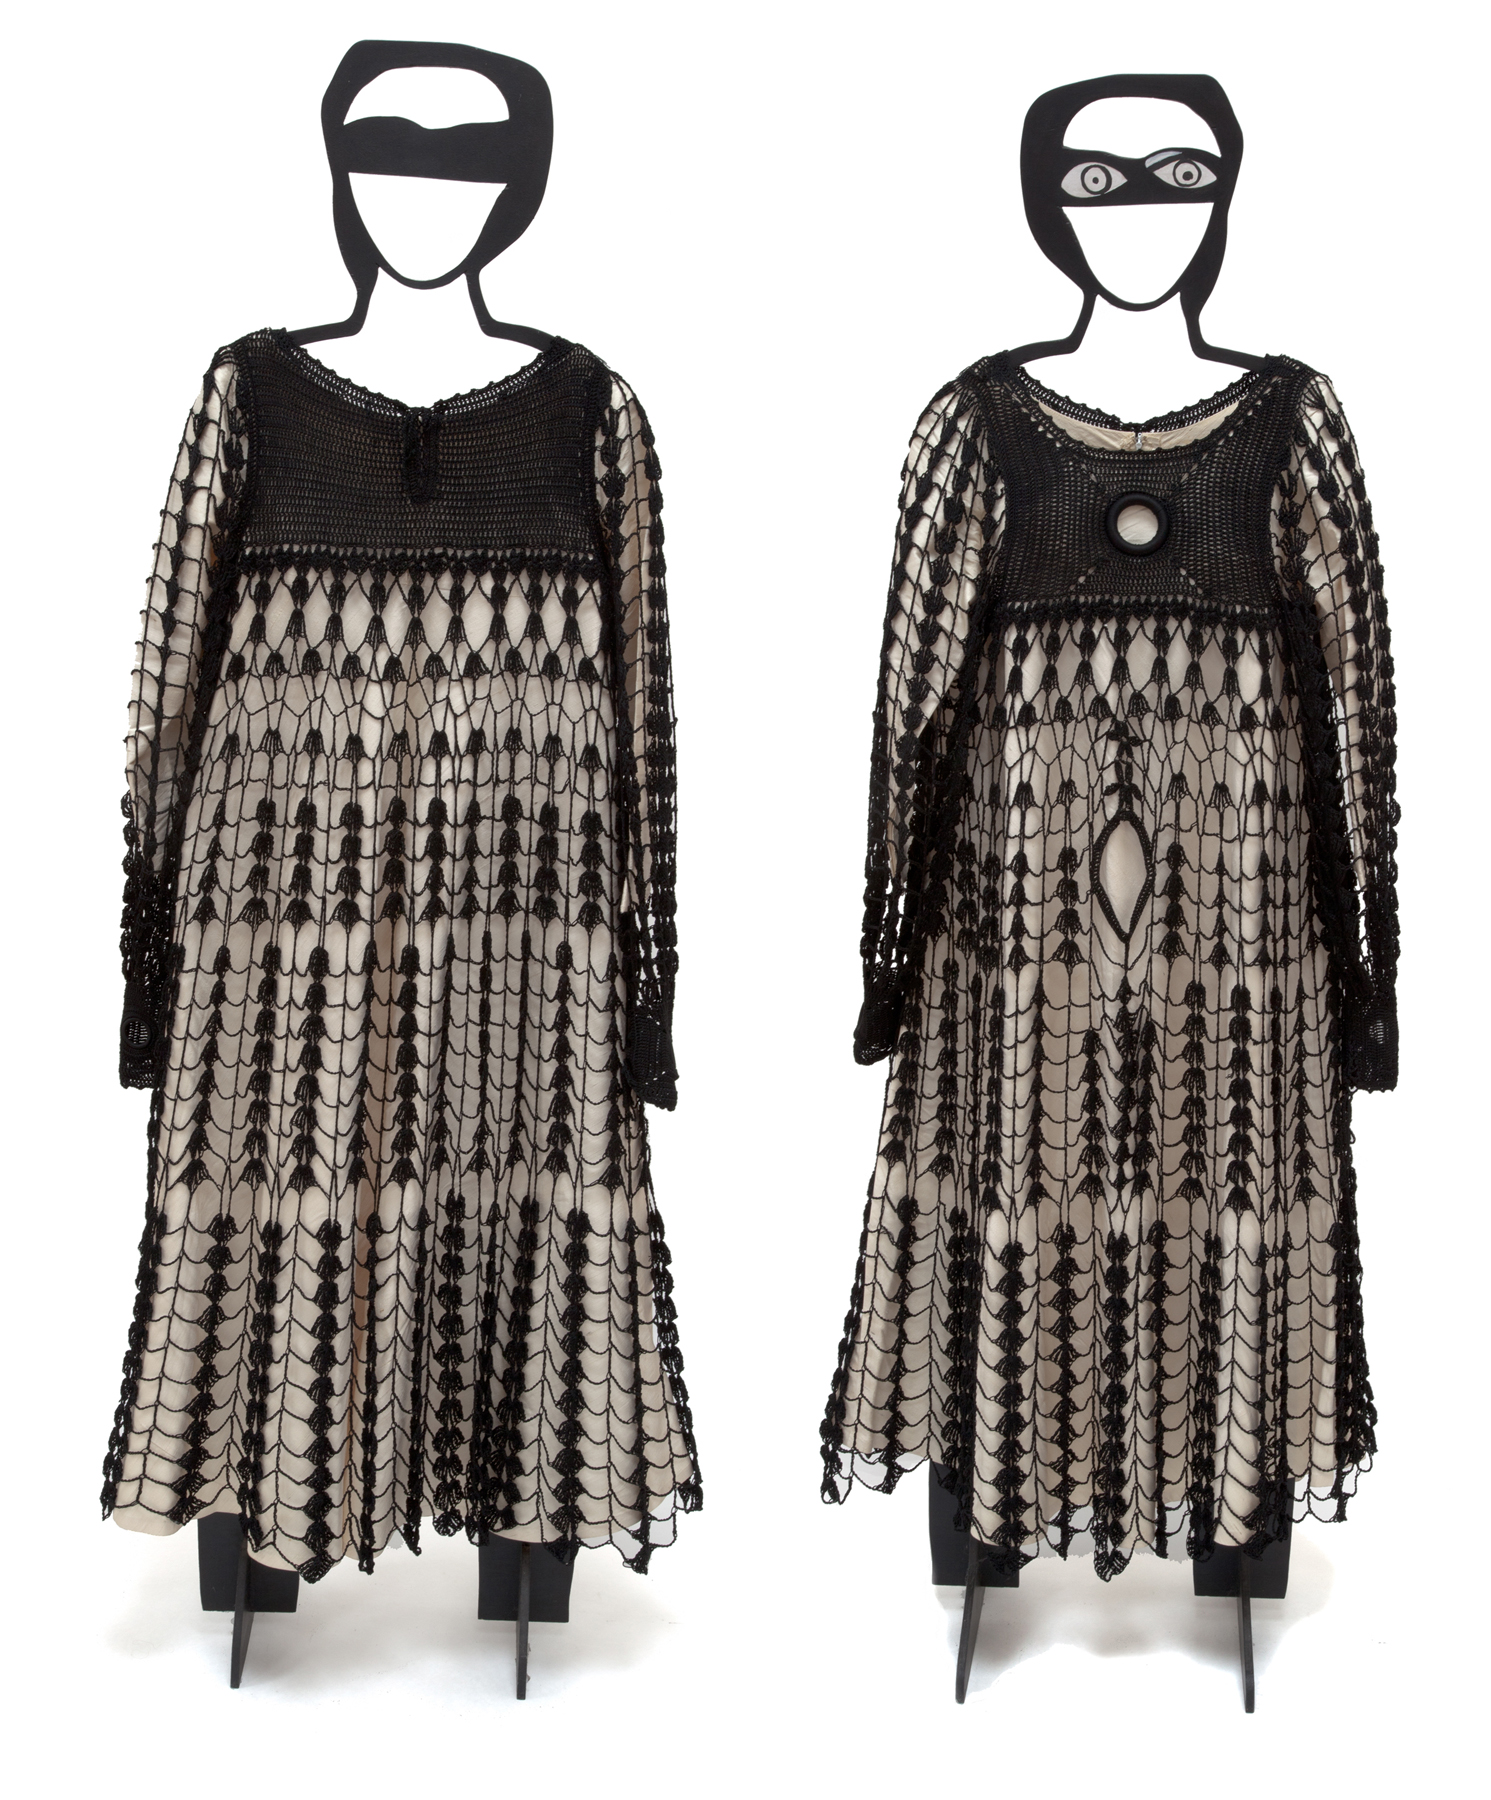 HC_19_1975_The Last (front and back)_crochet over silk dress_73x19x12_AB.jpg